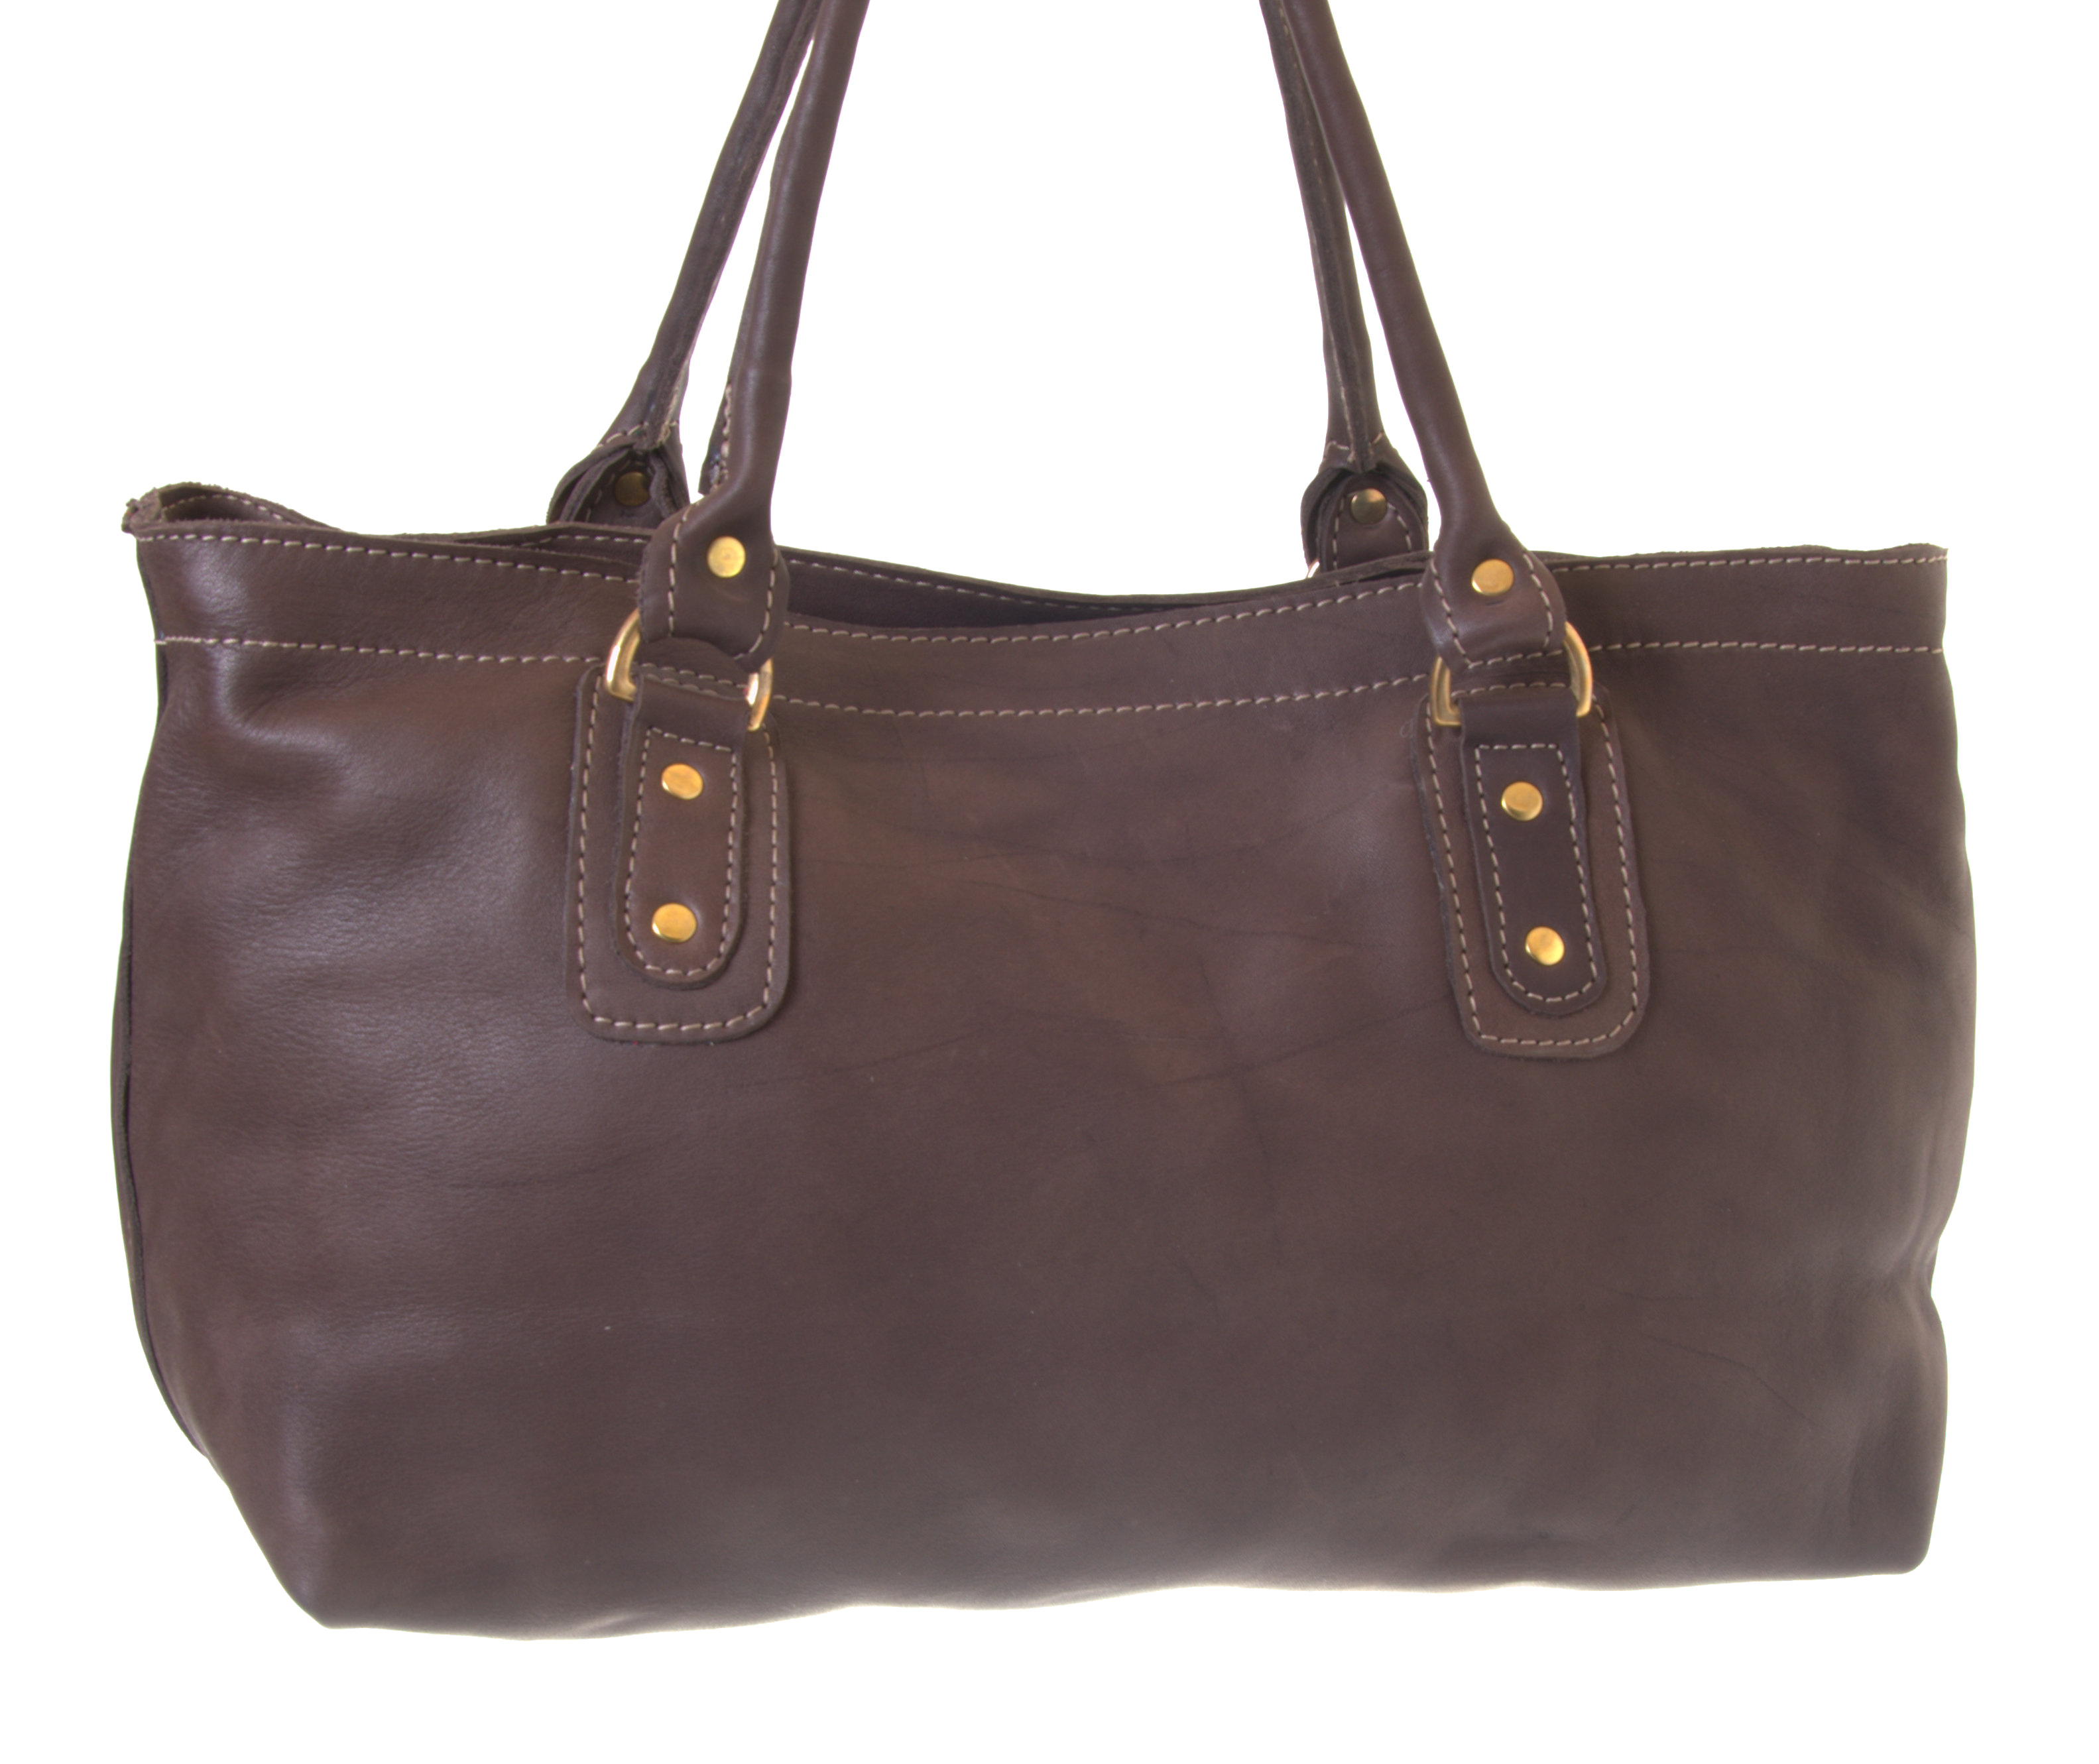 Abi - From Zambia - fair trade leather bag